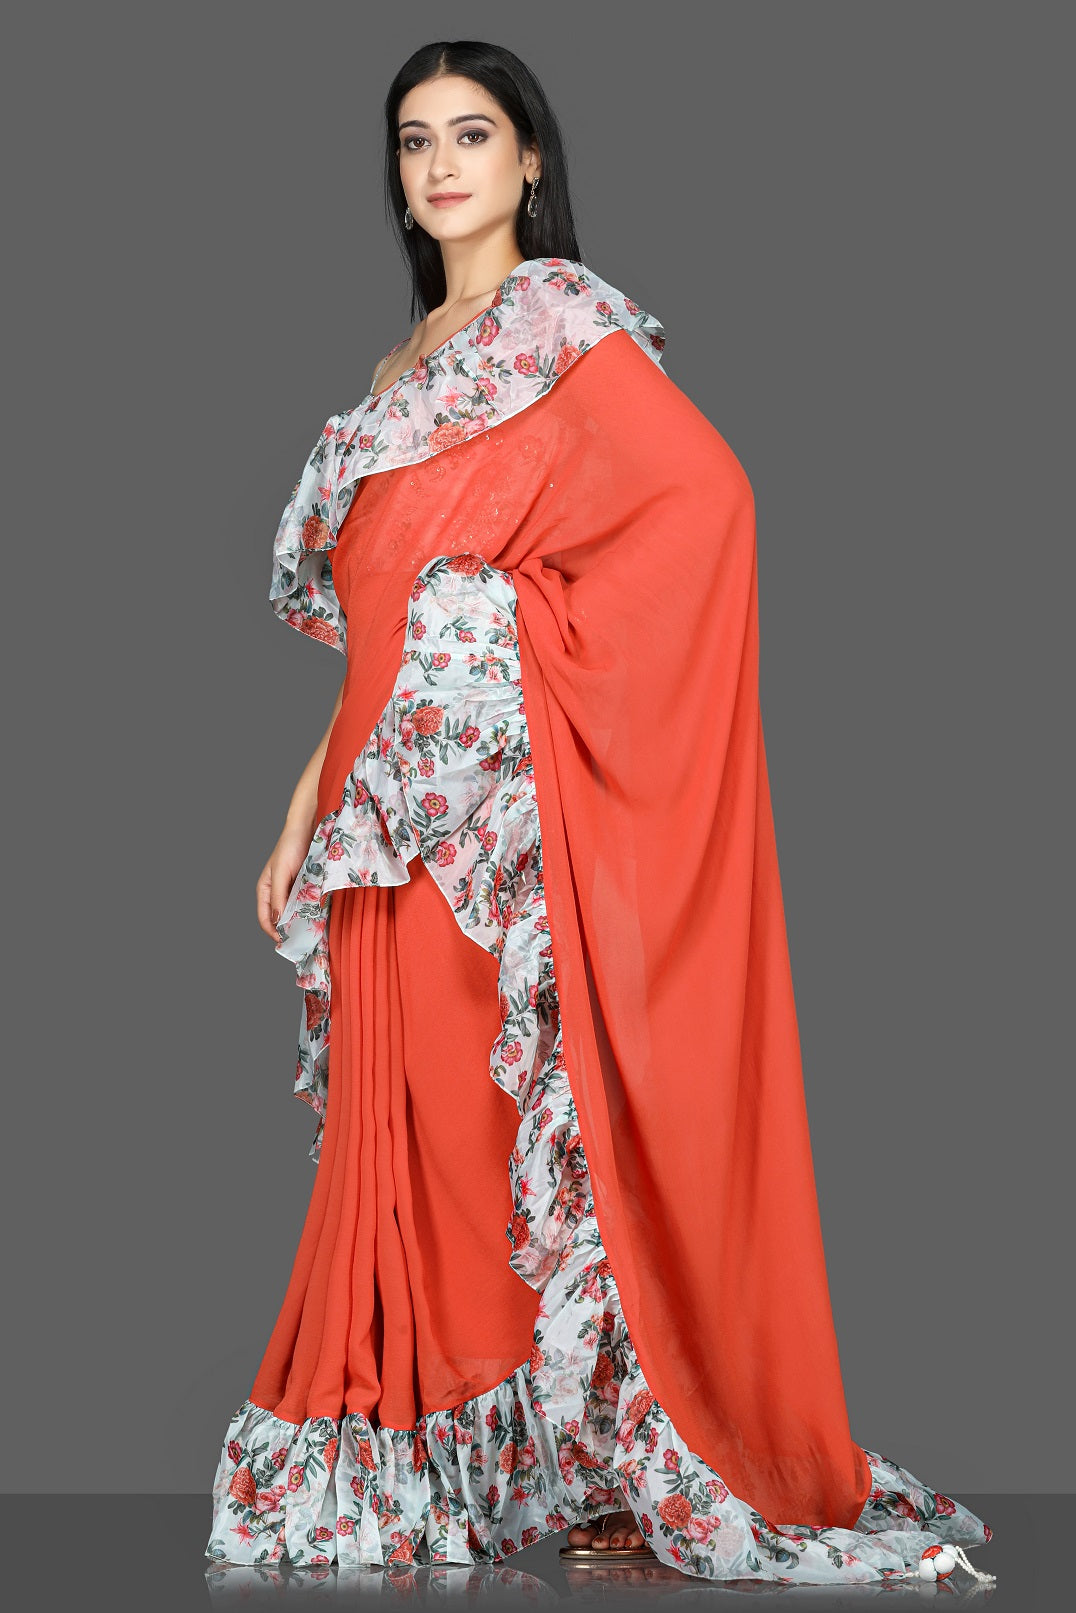 Shop red georgette floral ruffle sari online in USA with printed and embroidered saree blouse. Flaunt ethnic fashion with exquisite designer sarees with blouse. embroidered sarees, pure silk sarees from Pure Elegance Indian fashion boutique in USA.-side